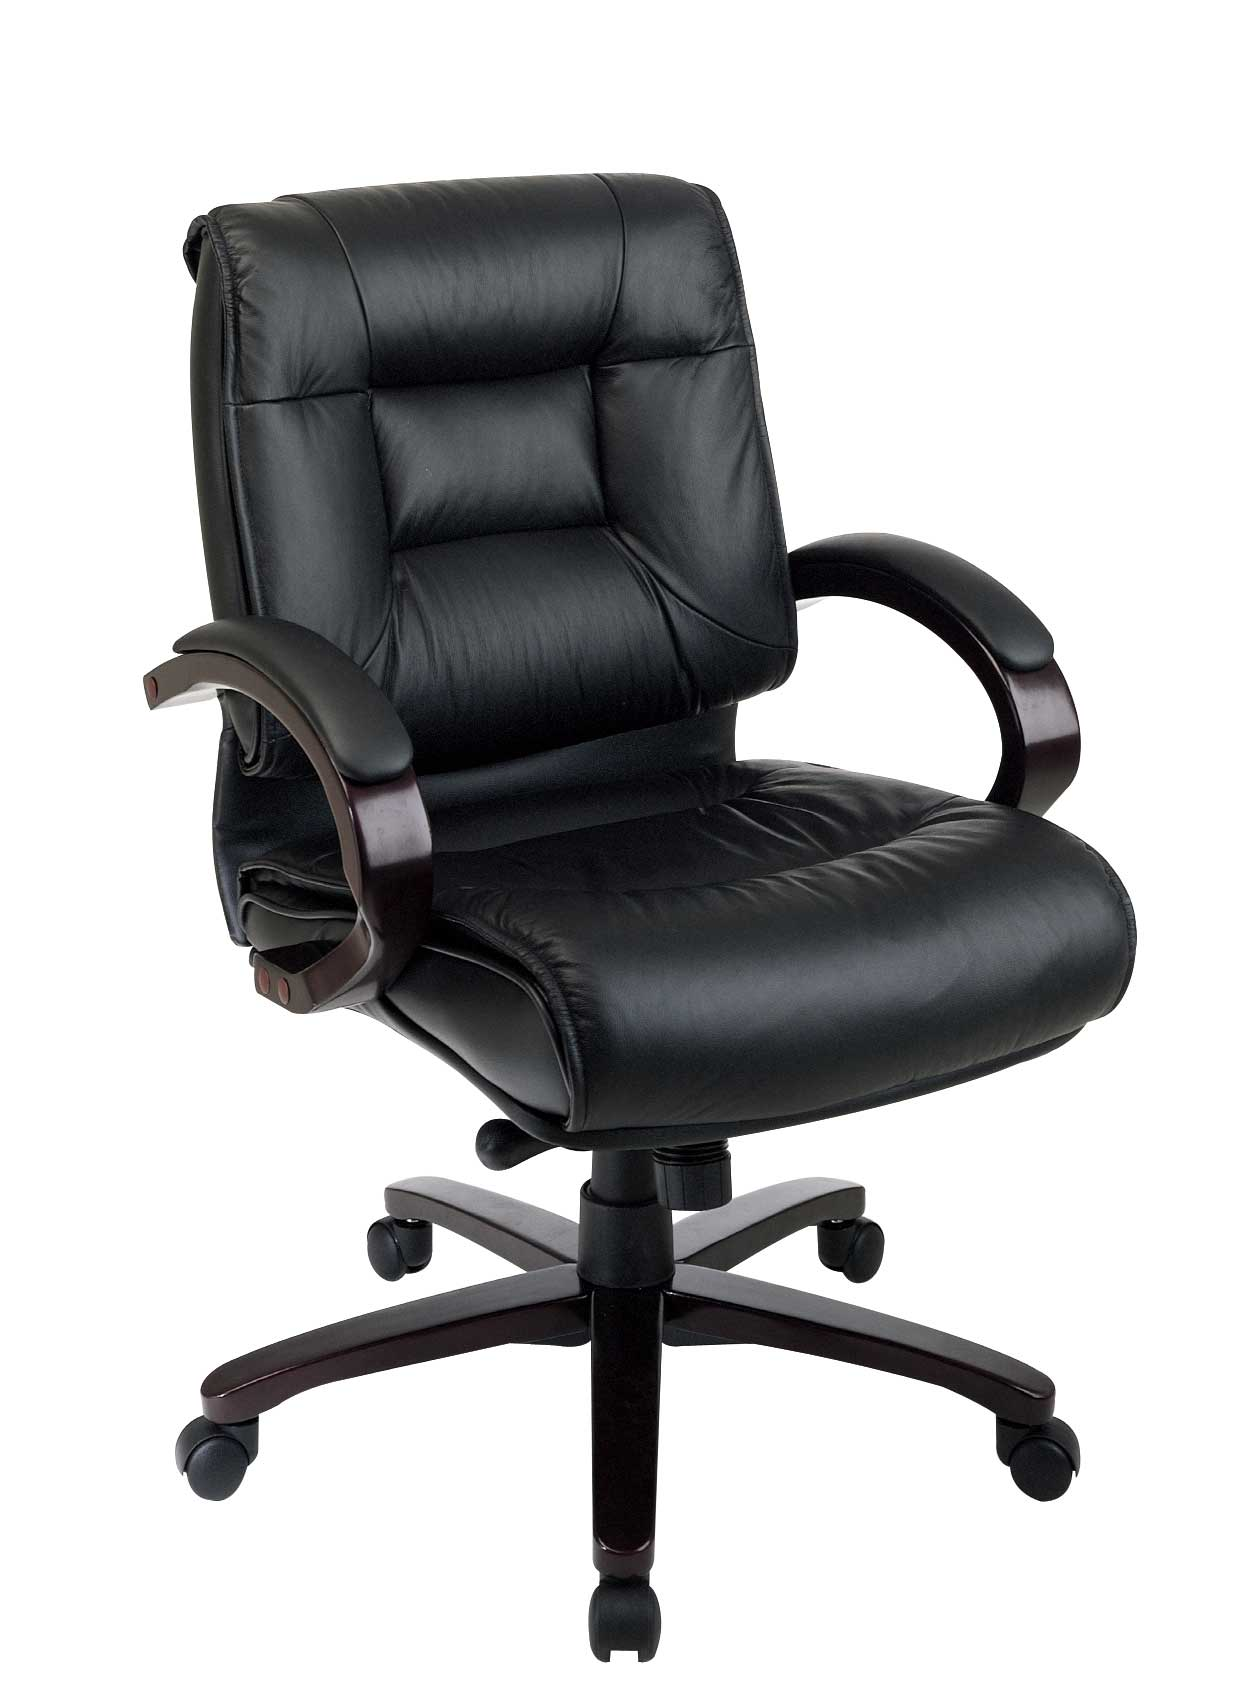 Comfortable Office Chairs Ergonomic Kneeling Posture Office Chair Office Furniture